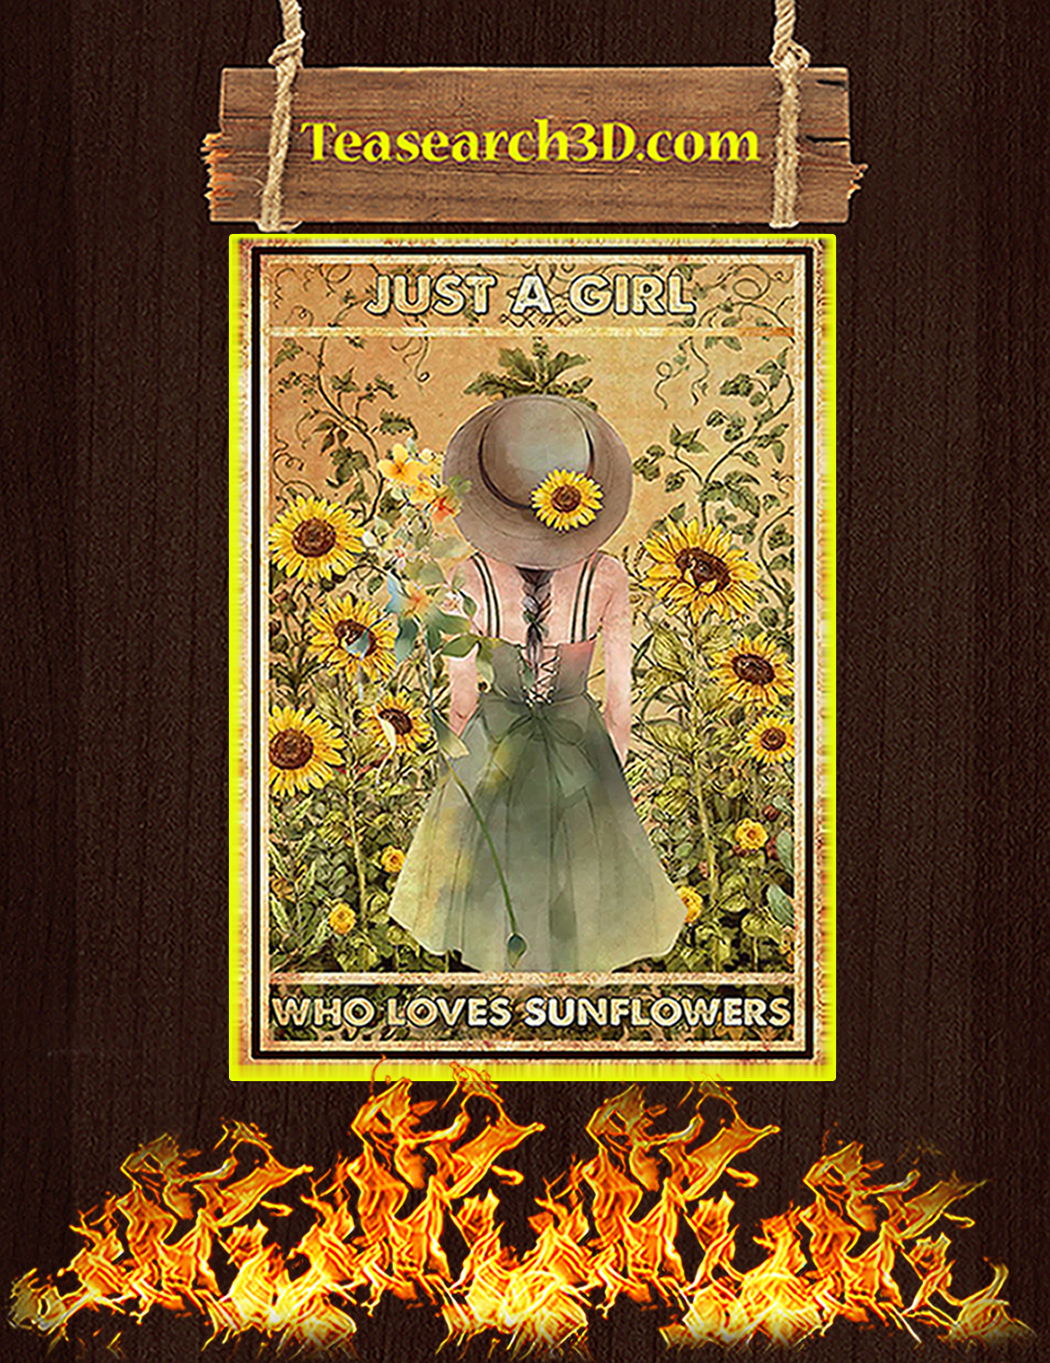 Just a girl who loves sunflowers poster A1